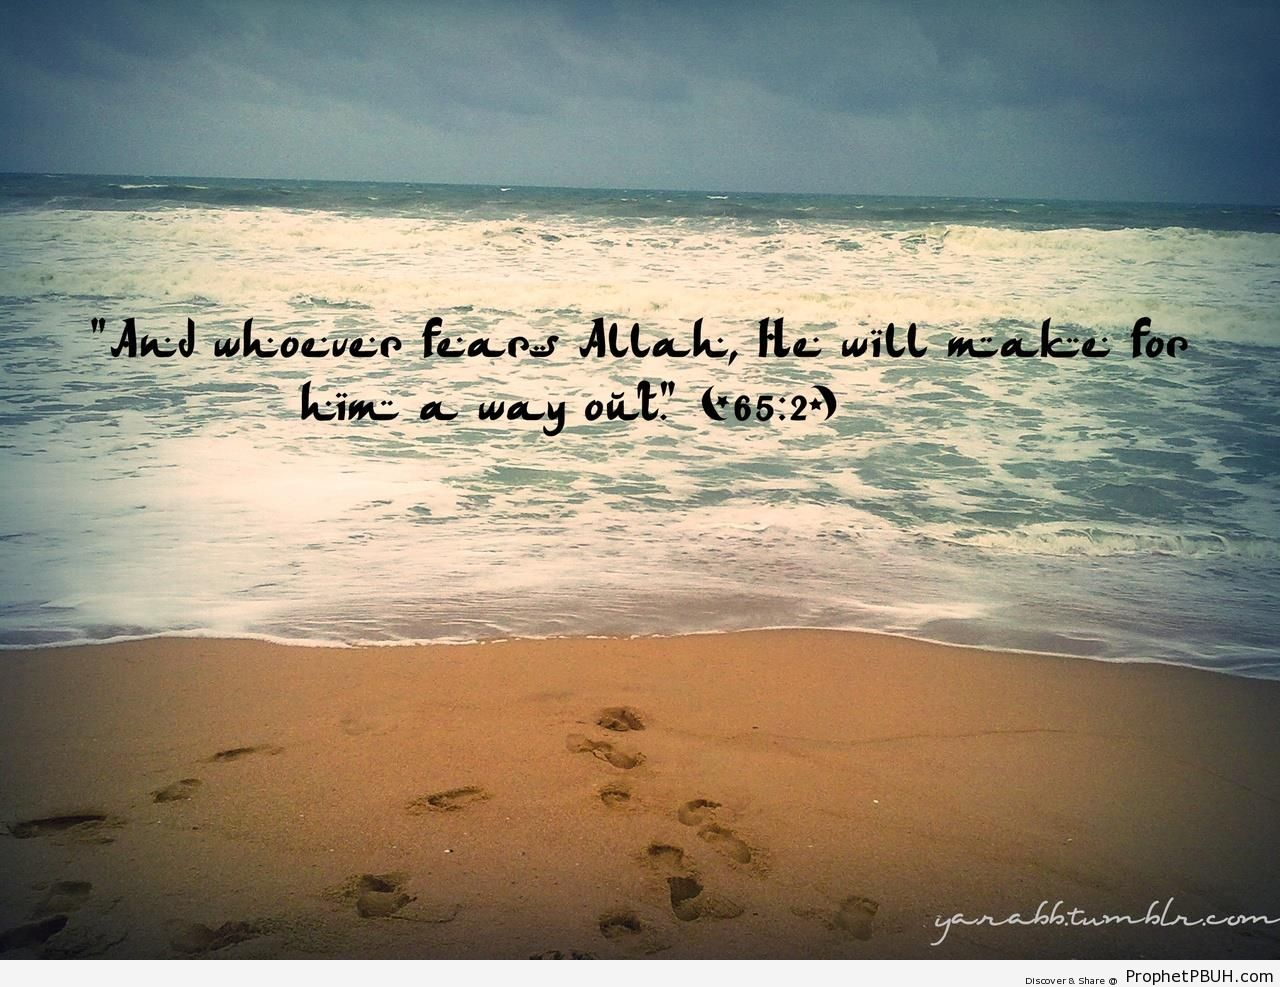 And Whoever Fears Allah (Quran 65-2; Surat at-Talaq) - Photos of Beaches